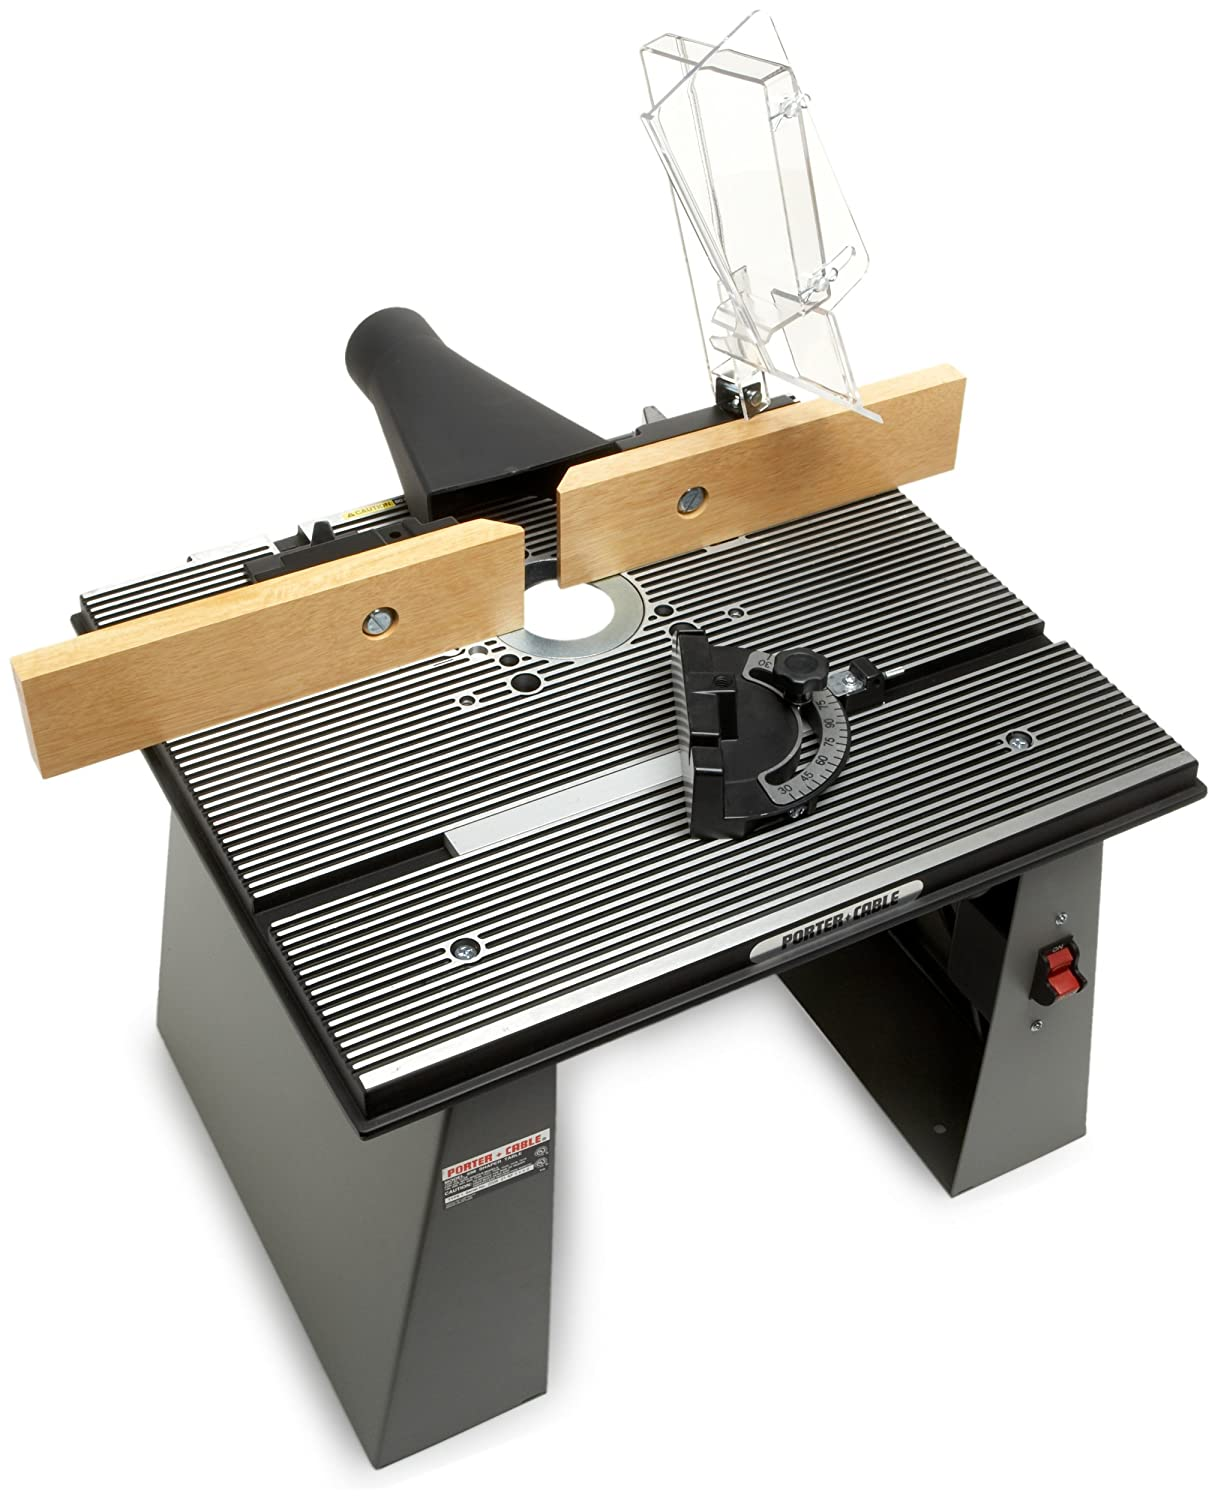 Porter cable 698 bench top router table portercable router table porter cable 698 bench top router table portercable router table amazon greentooth Choice Image